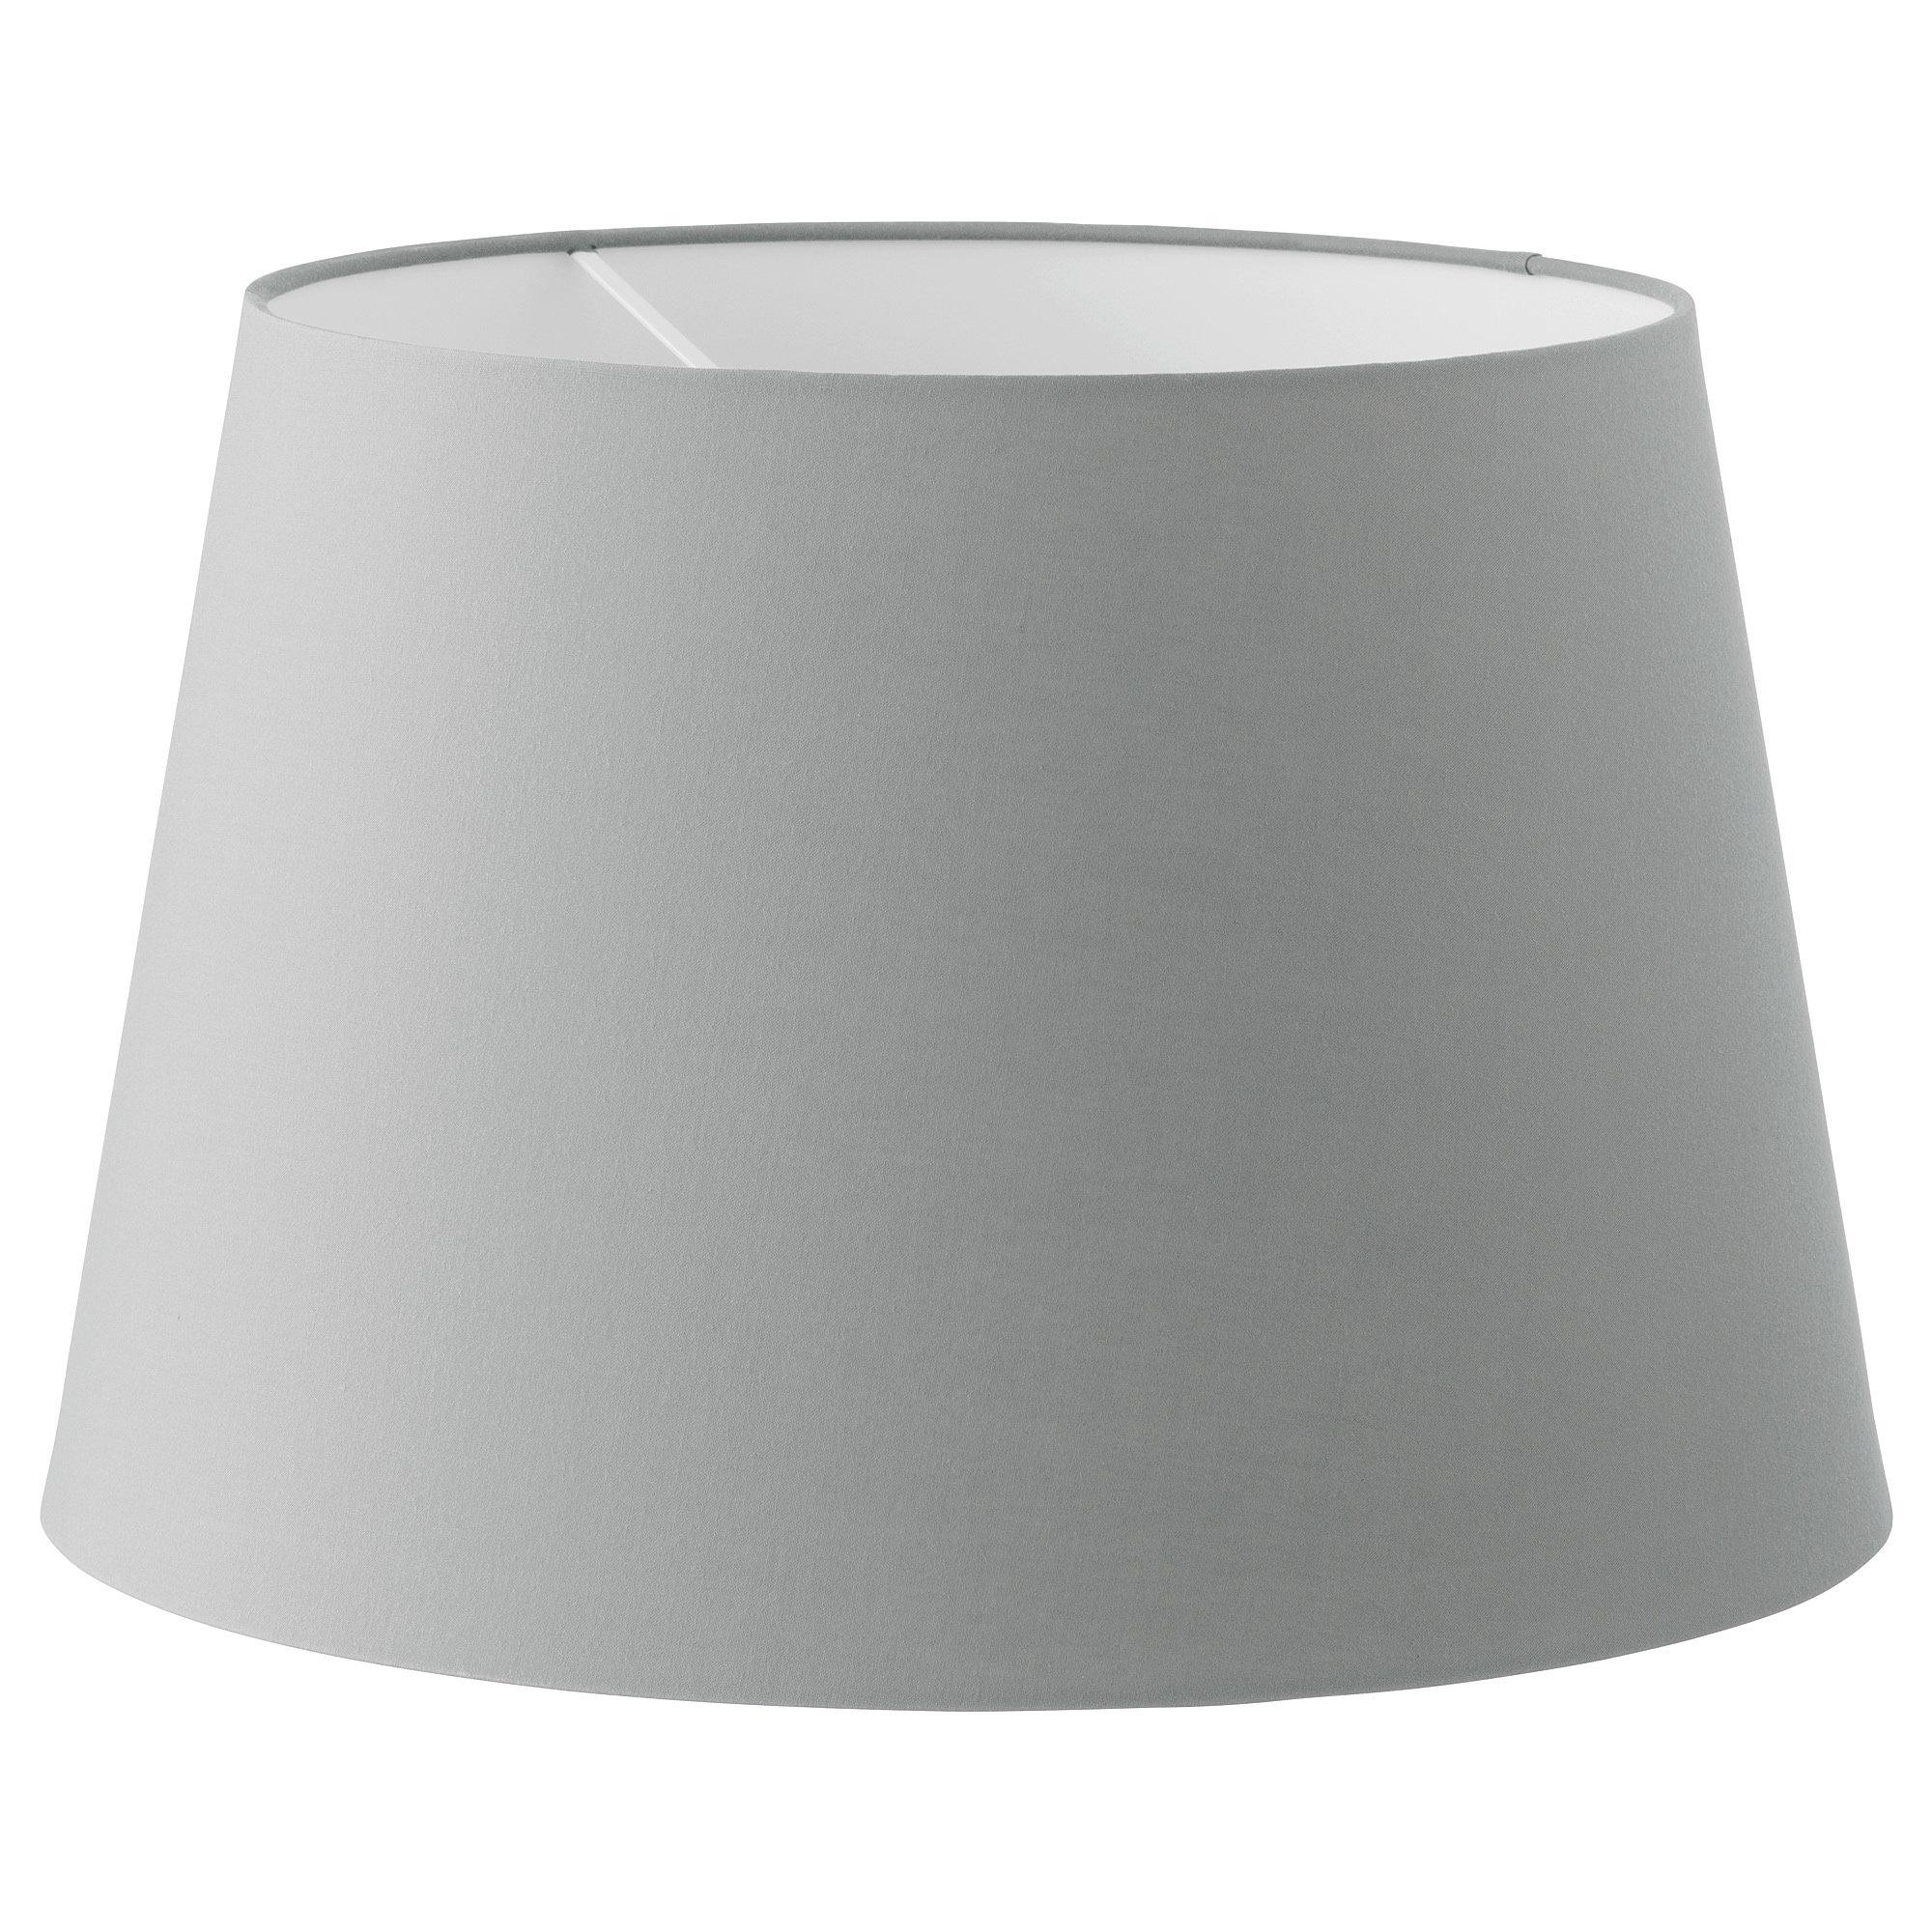 JÄra Lamp Shade Gray